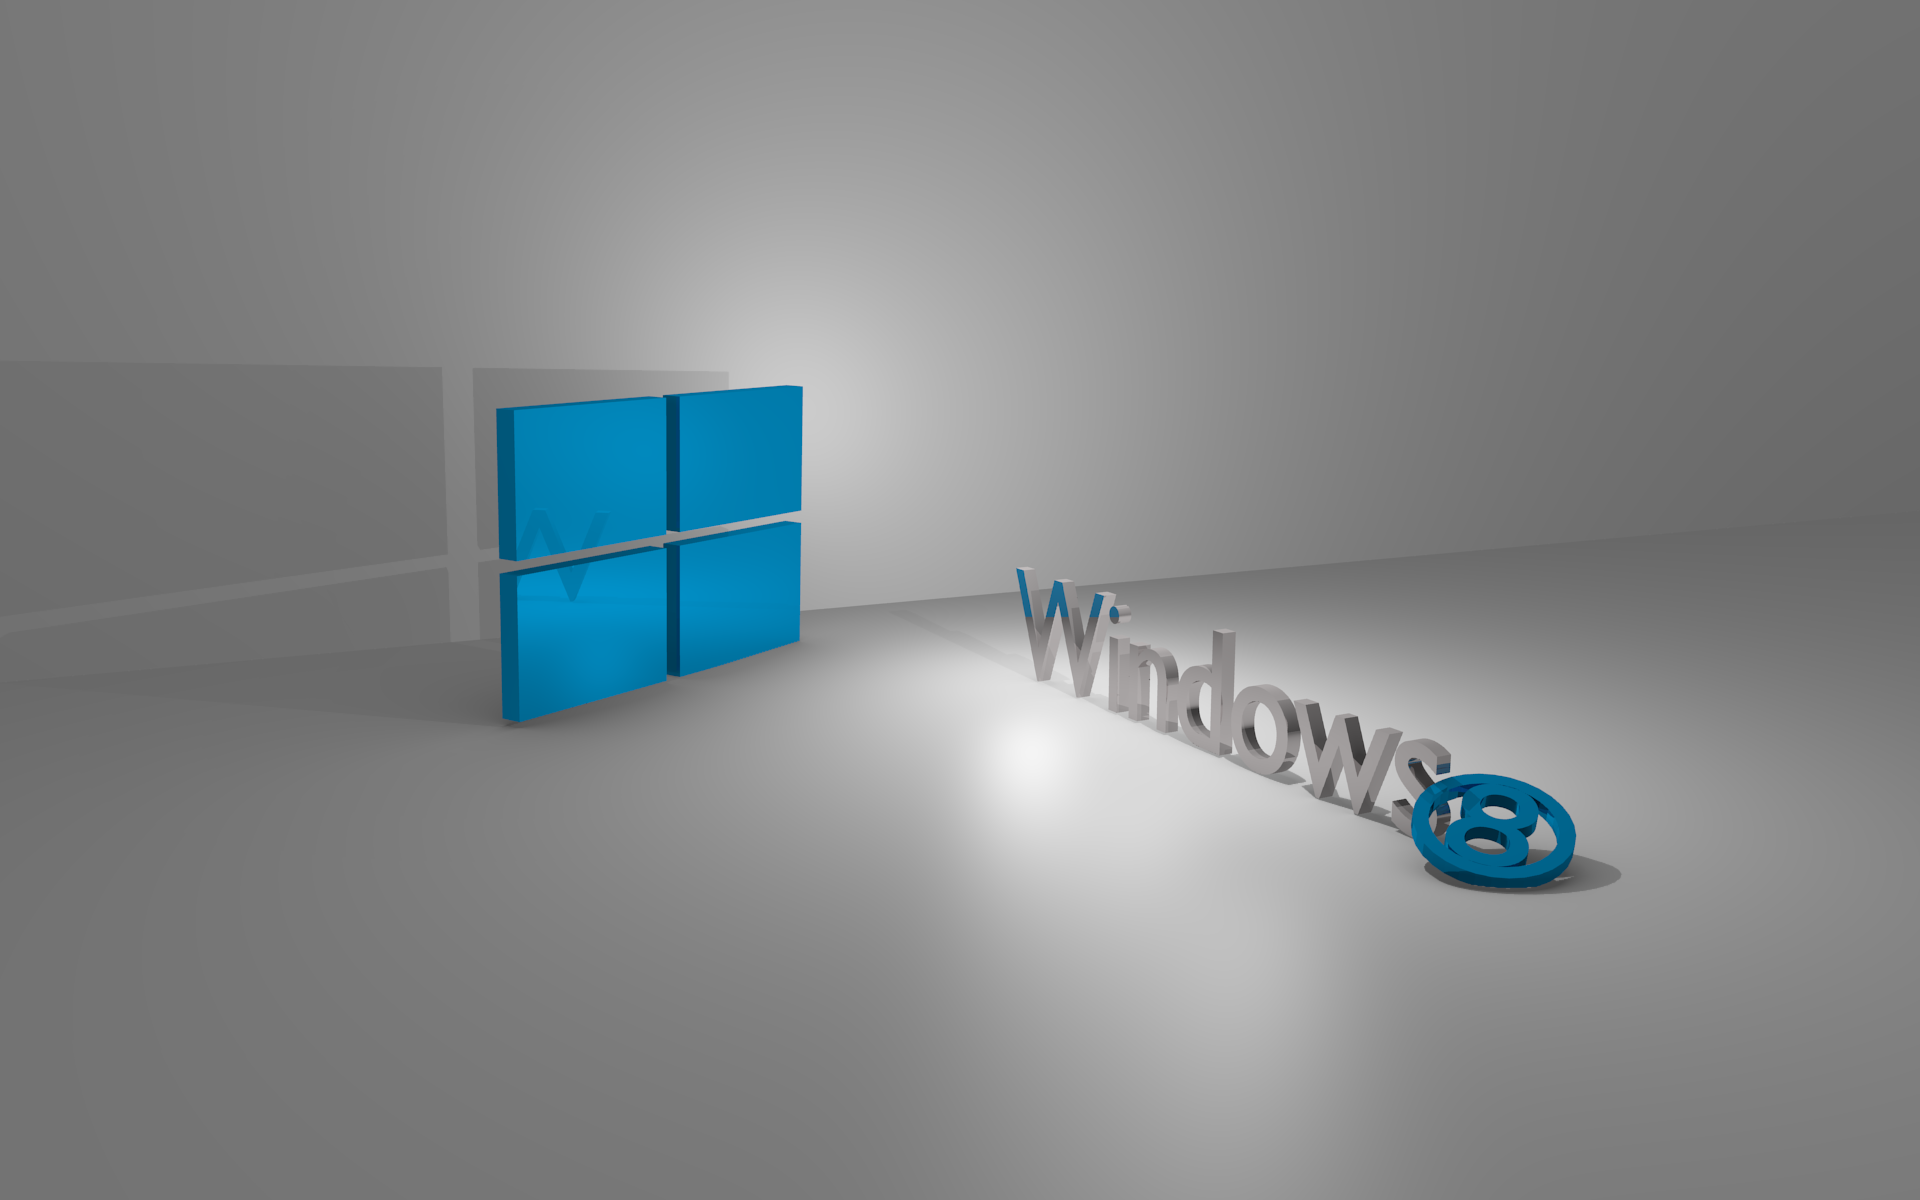 3D Windows 8 Wallpaper PC